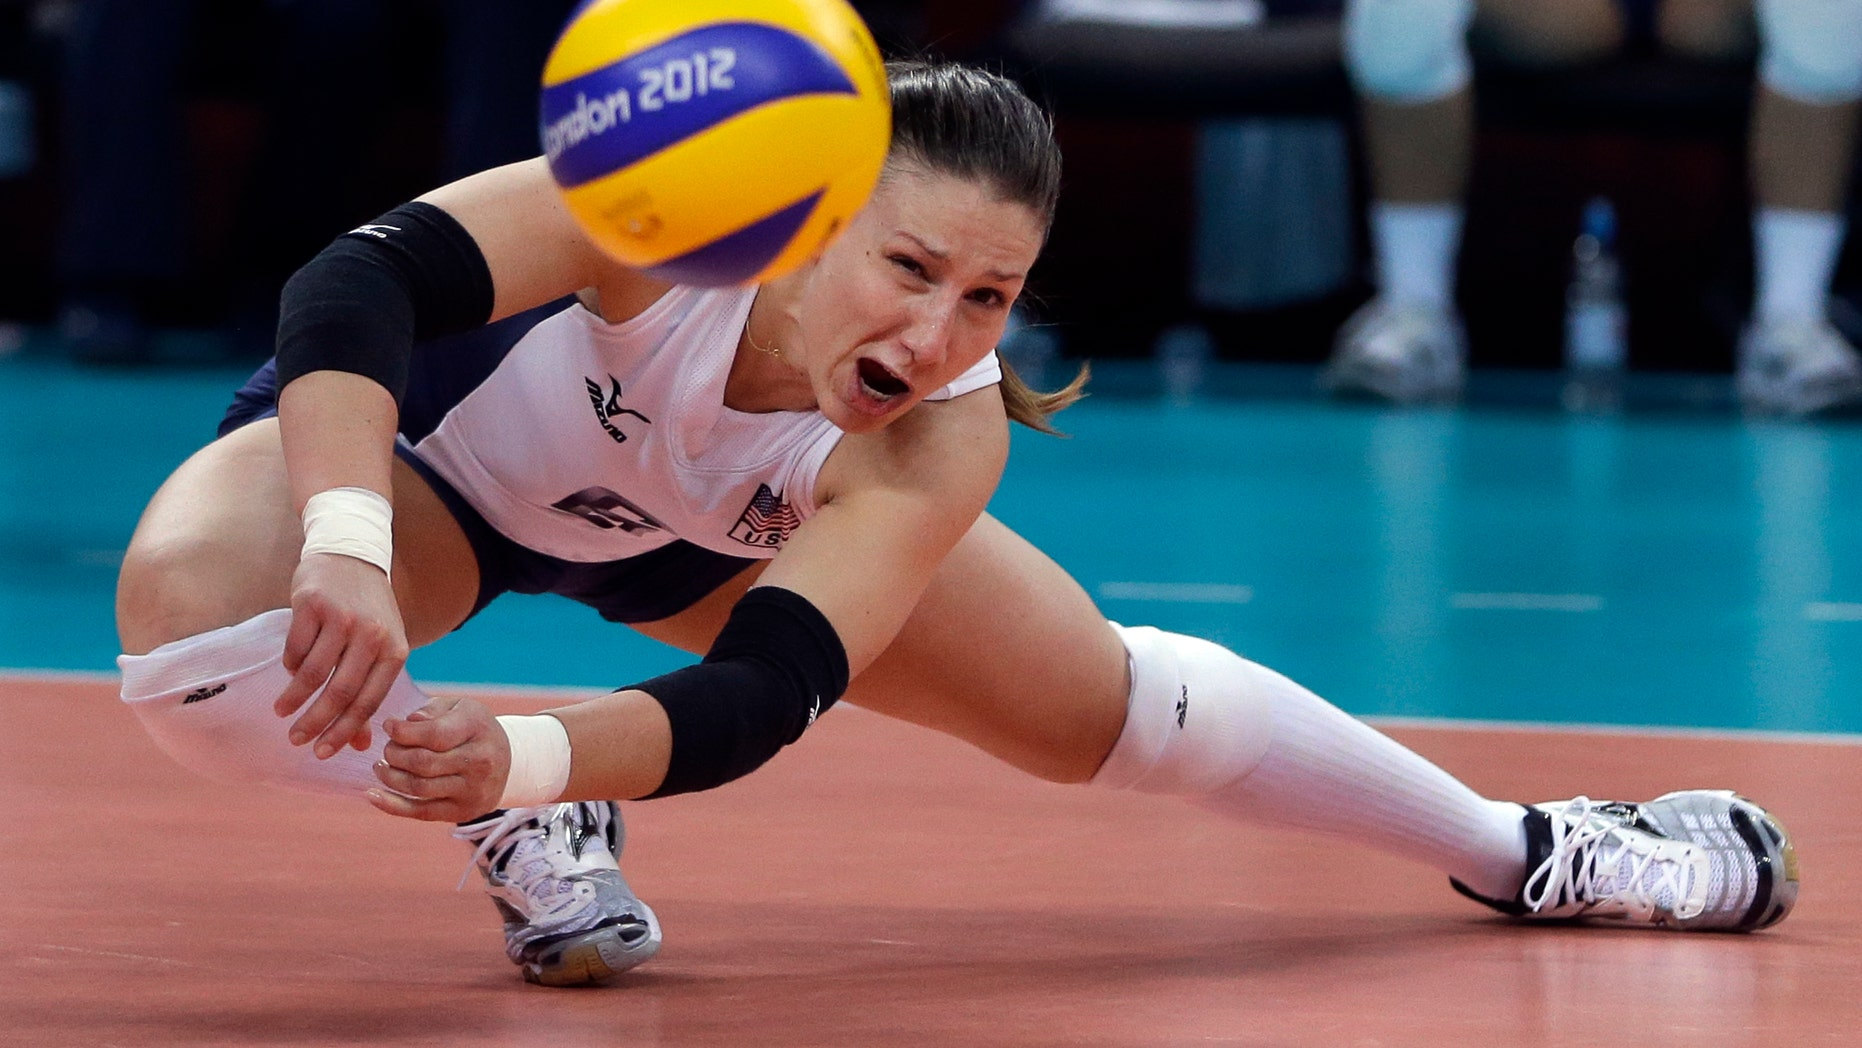 United States' Nicole Davis reaches for the ball during a women's preliminary volleyball match against Brazil at the 2012 Summer Olympics, Monday, July 30, 2012, in London. (AP Photo/Jeff Roberson)